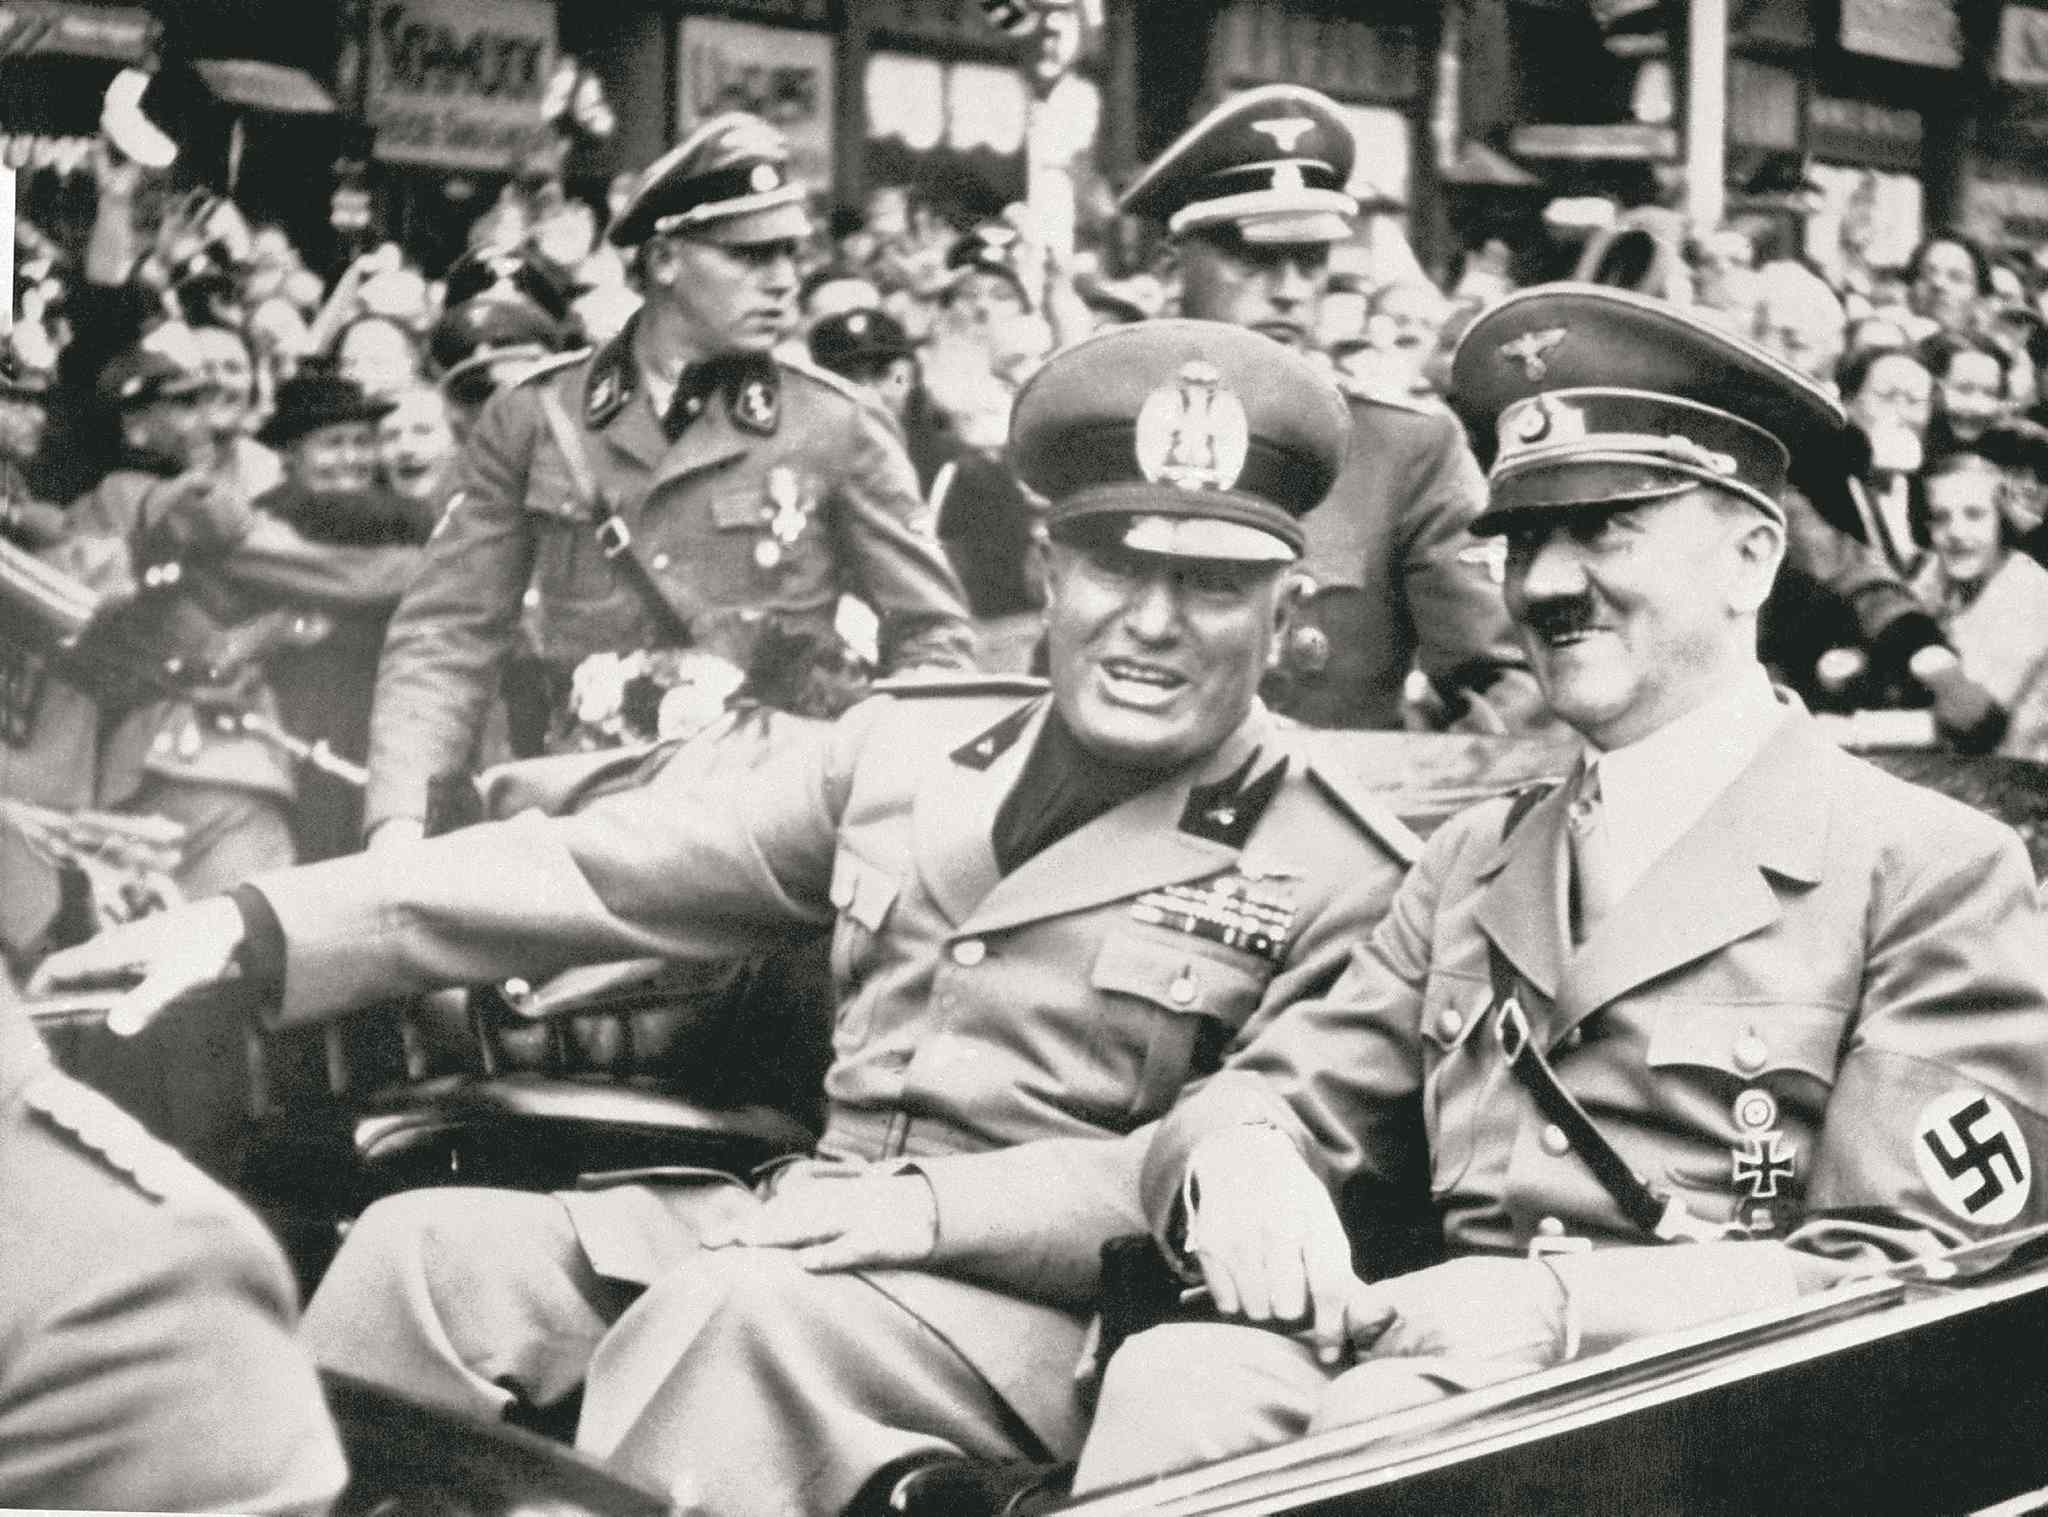 italian and german fascism comparison essay In this essay i will mainly be focusing my attention on nazi germany in comparison to fascist italy to determine the answer to the question to what extent was nazism a german variant of a generic fascism.